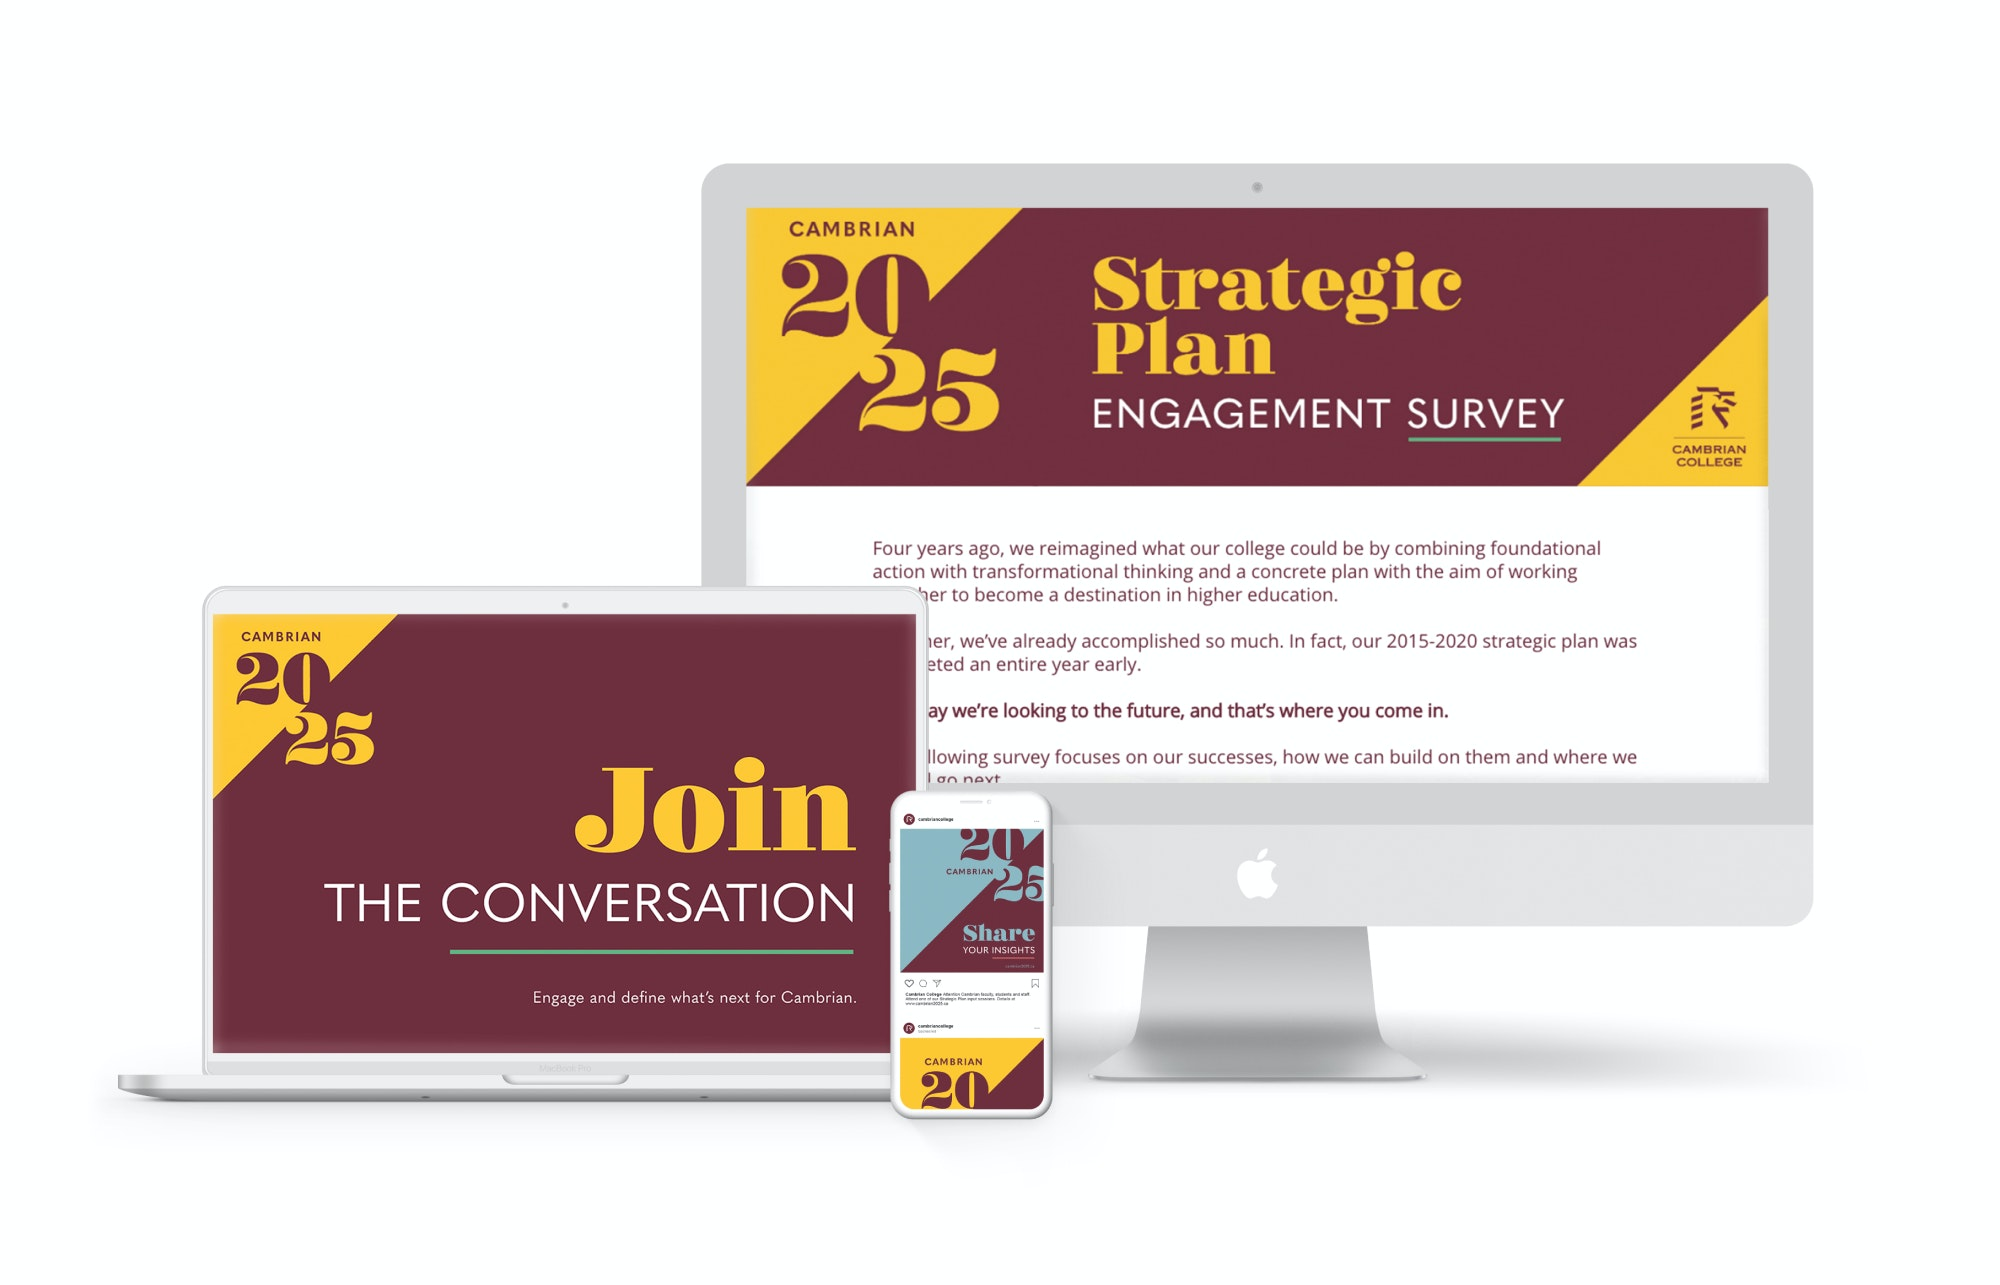 Cambrian strat plan engagement website on multiple screens